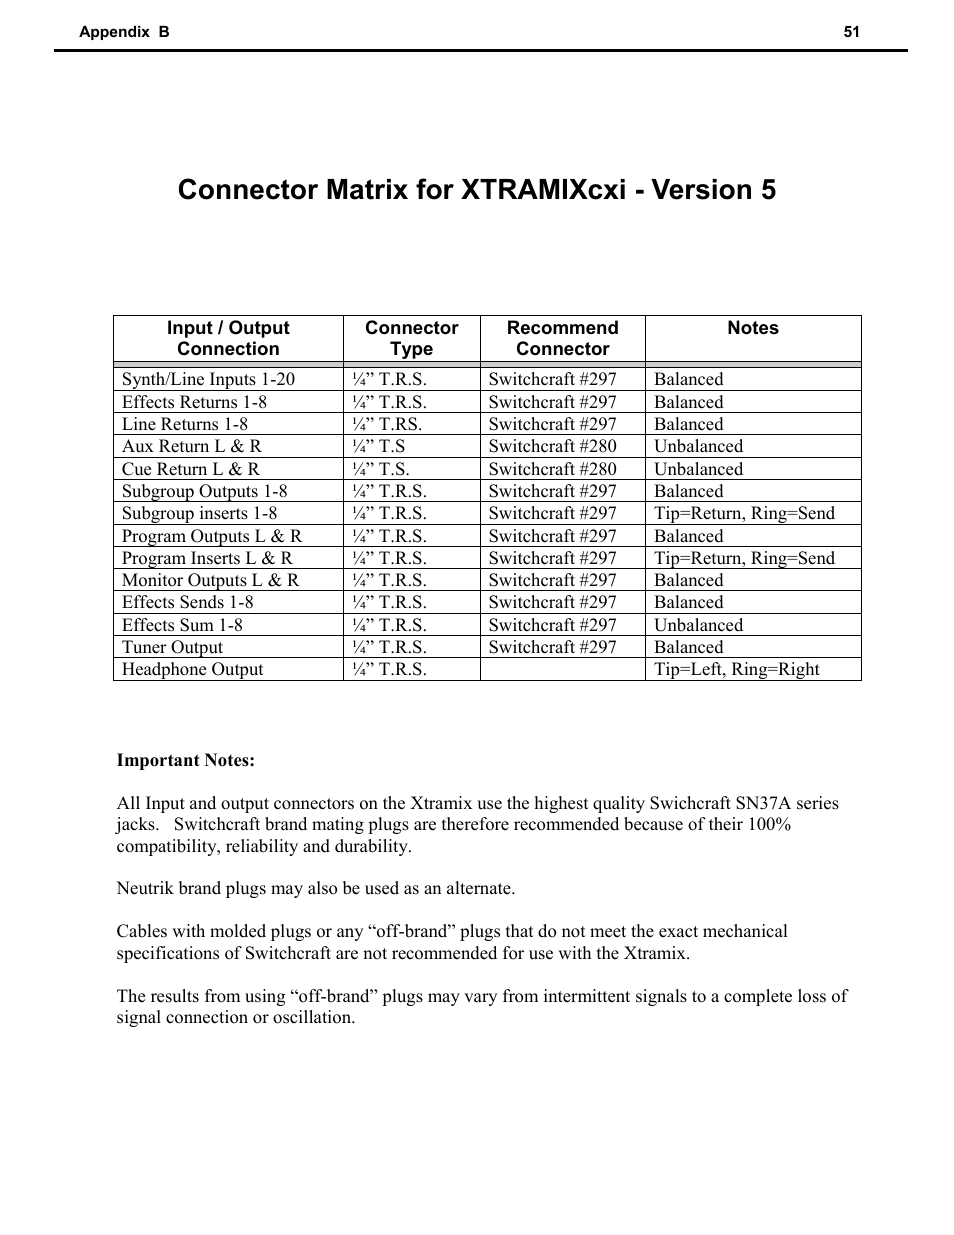 hight resolution of connector matrix for xtramixc xi connector matrix for xtramixcxi version 5 speck electronics xtramix user manual page 56 56